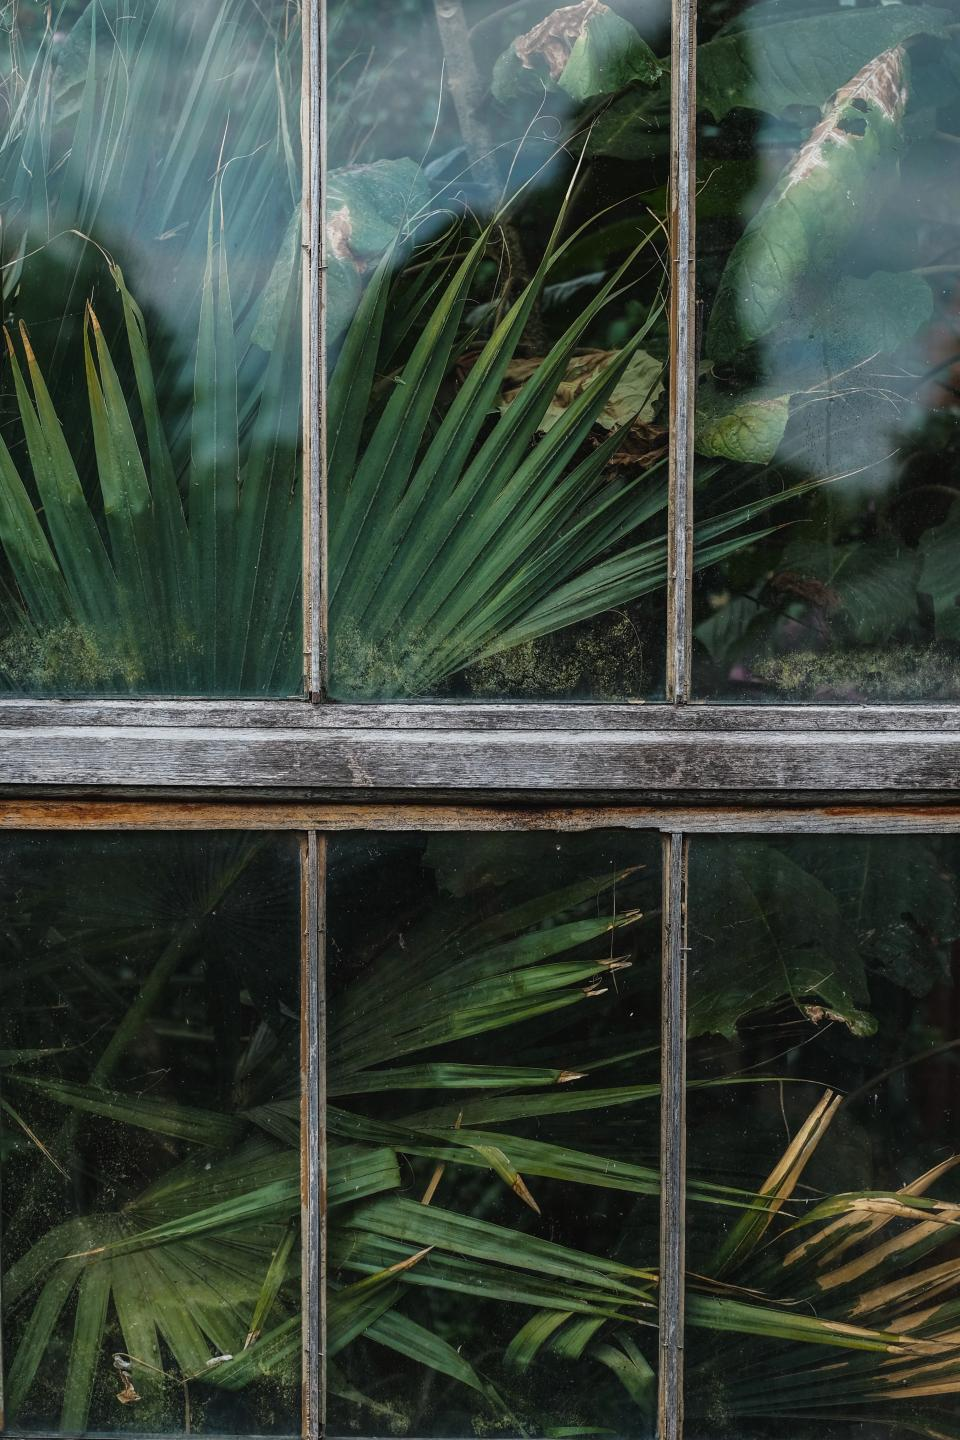 window shield glass green plants nature outside